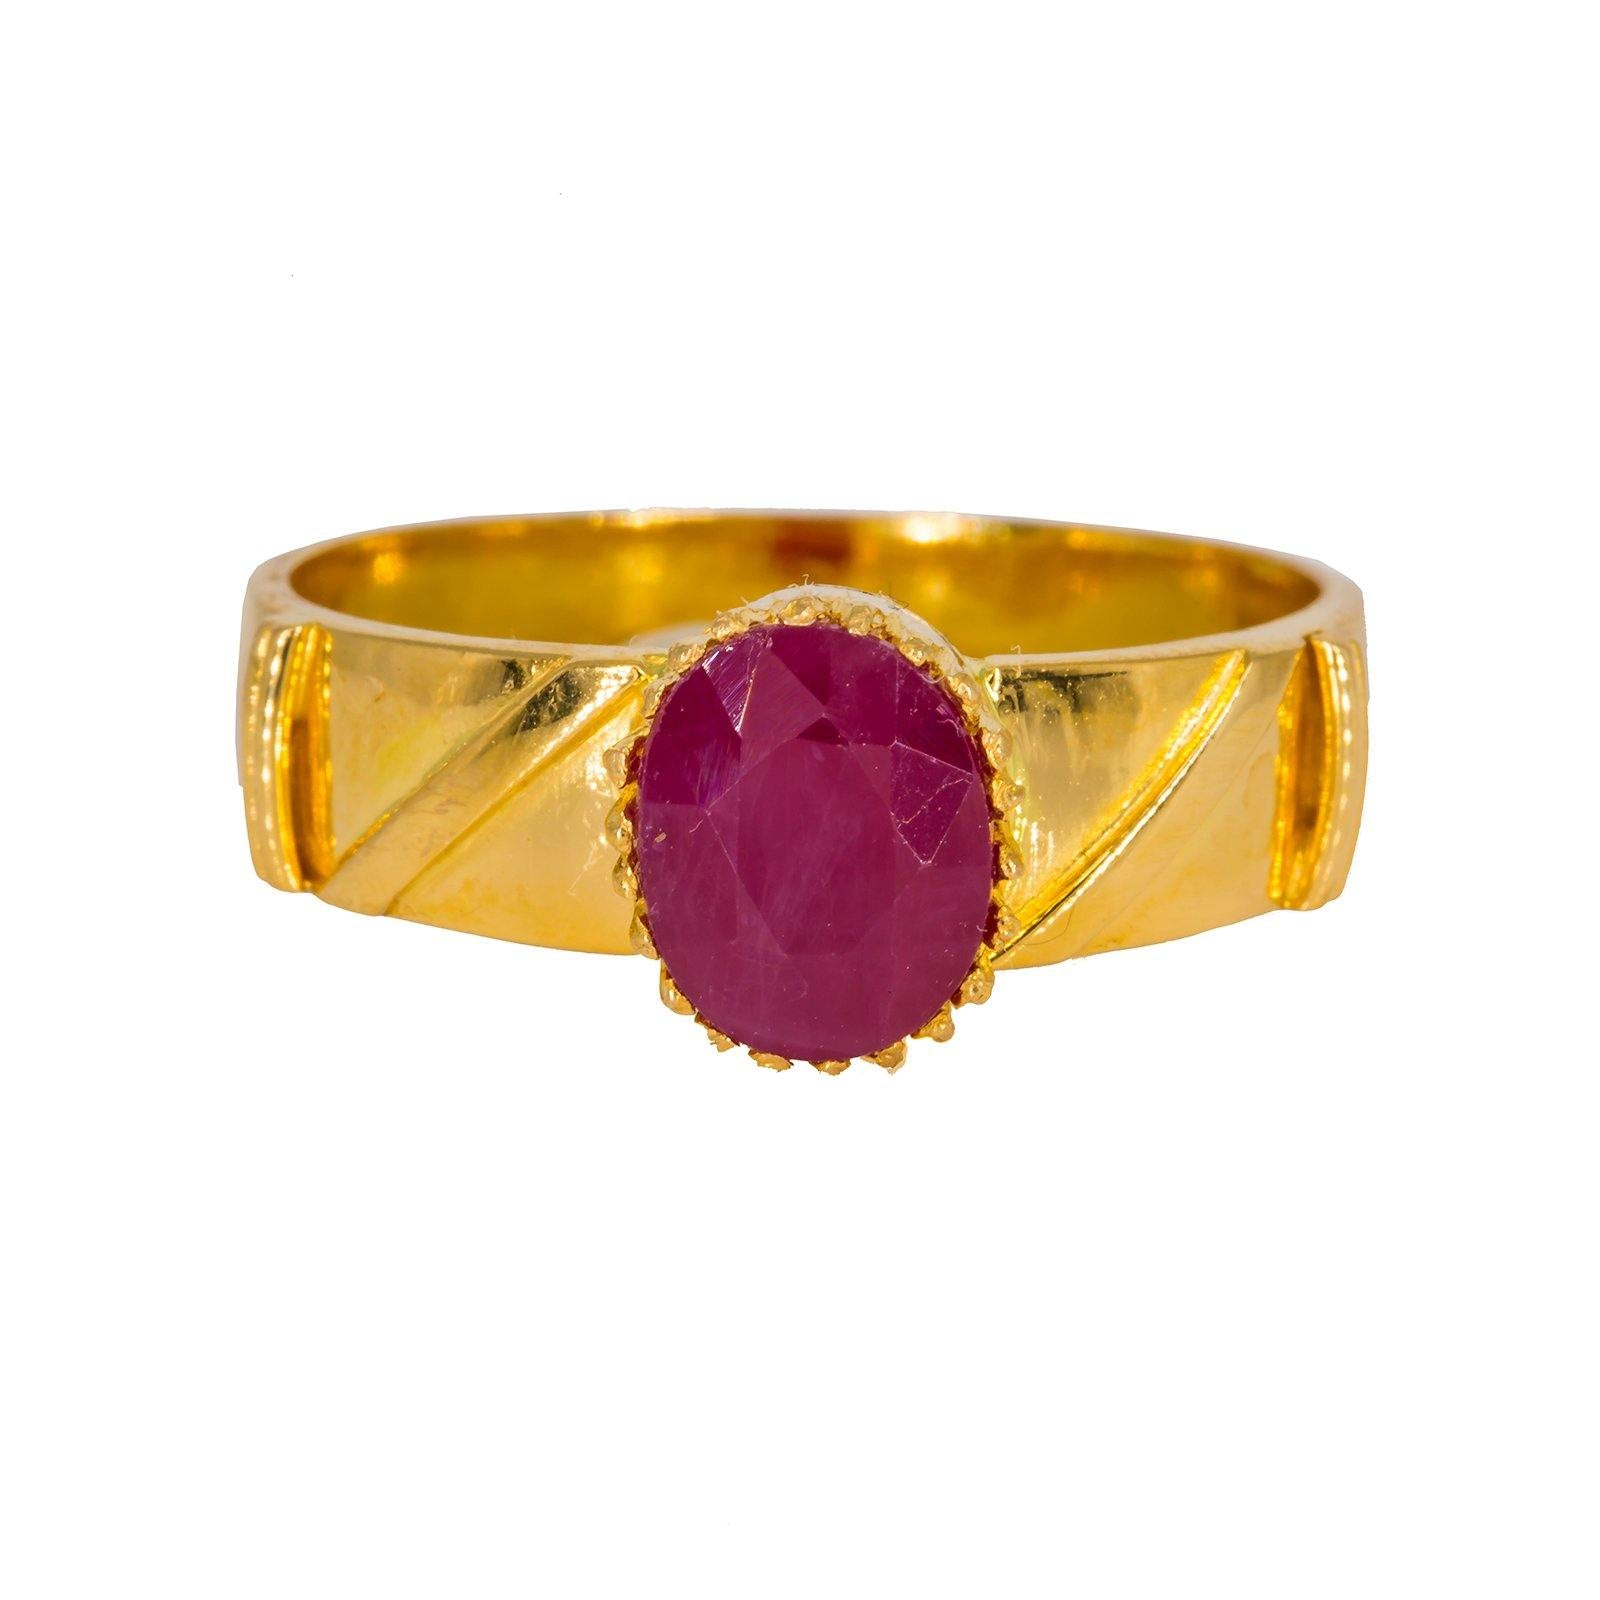 22K Yellow Gold Men's Ring W/ Ruby & Faceted Shank Details